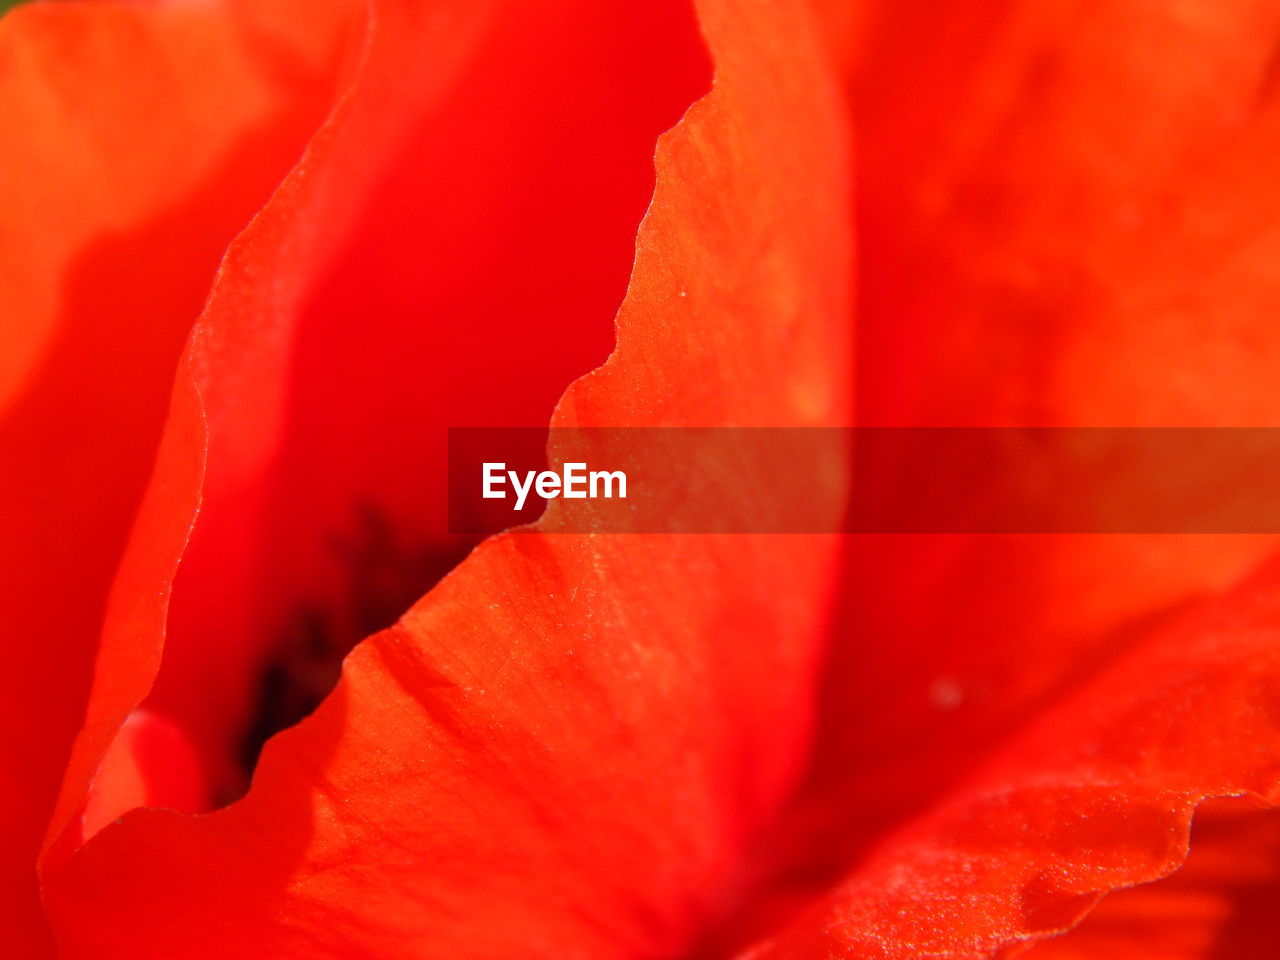 full frame, flower, petal, backgrounds, nature, red, beauty in nature, close-up, flower head, fragility, freshness, rose - flower, no people, soft focus, day, outdoors, hibiscus